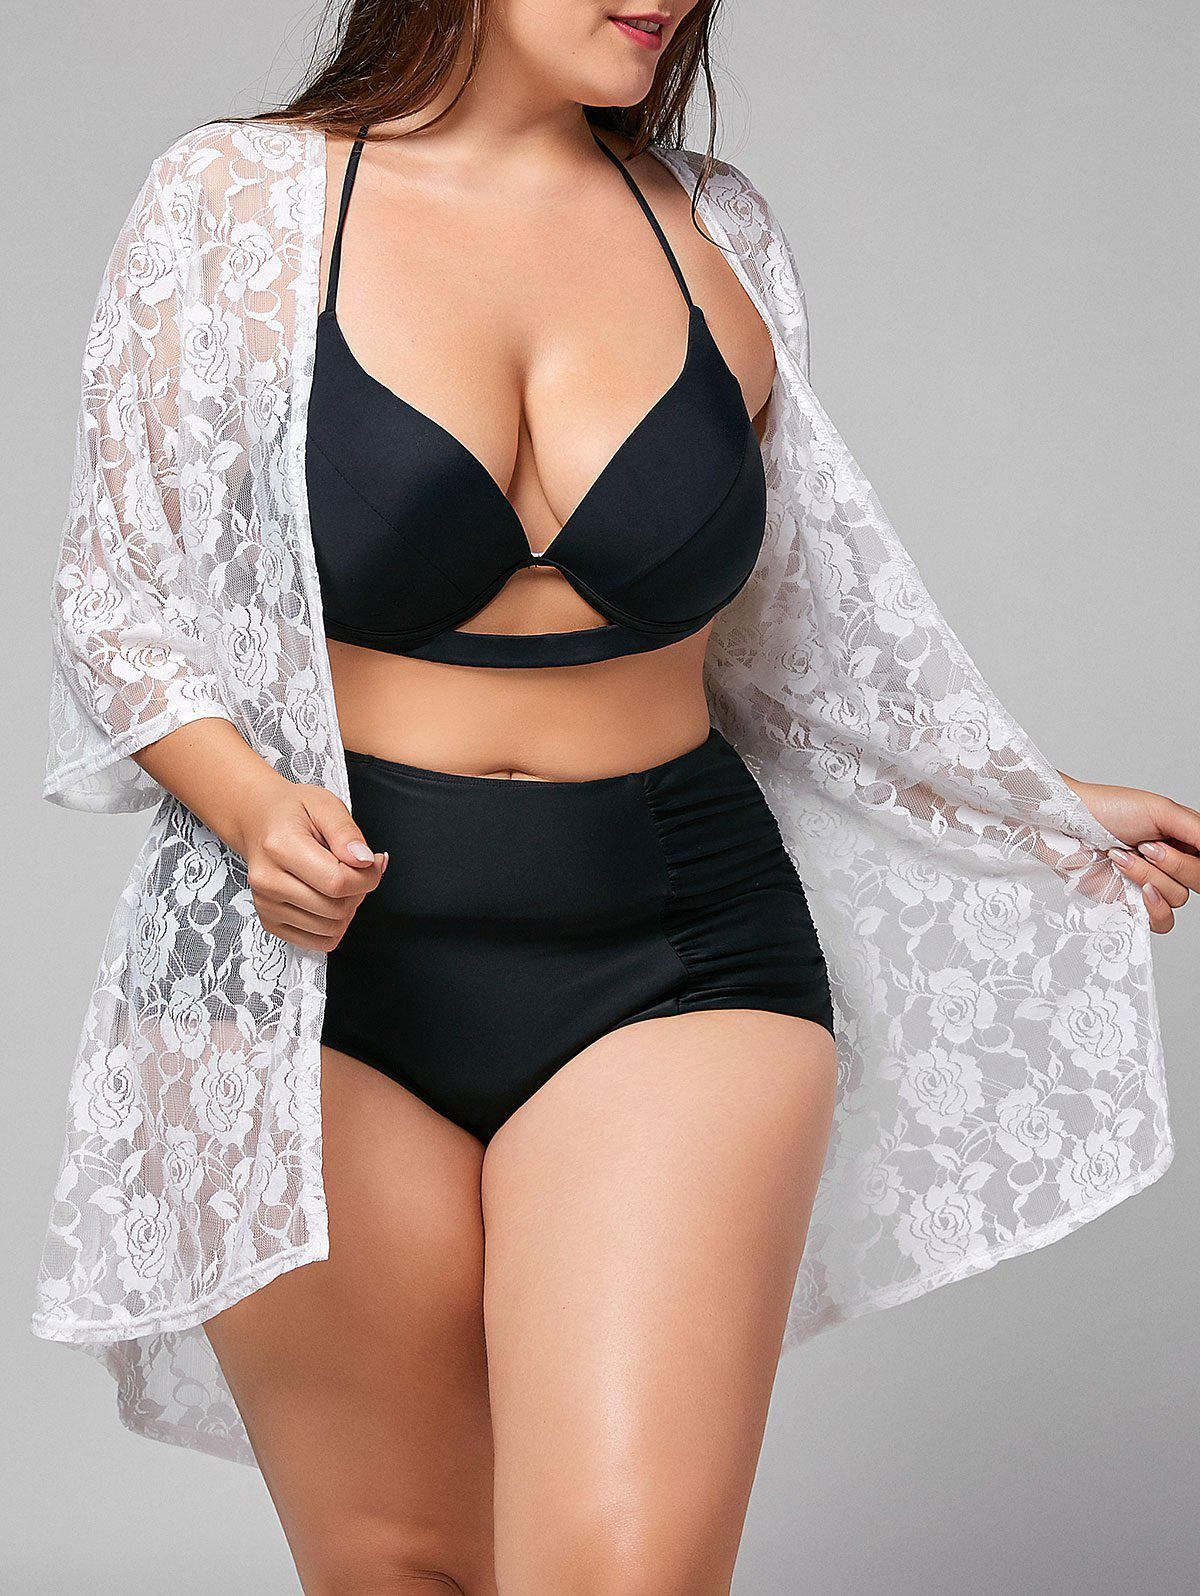 Plus Size Lace Sheer Kimono Cover-up sheer lace panel plus size leggings